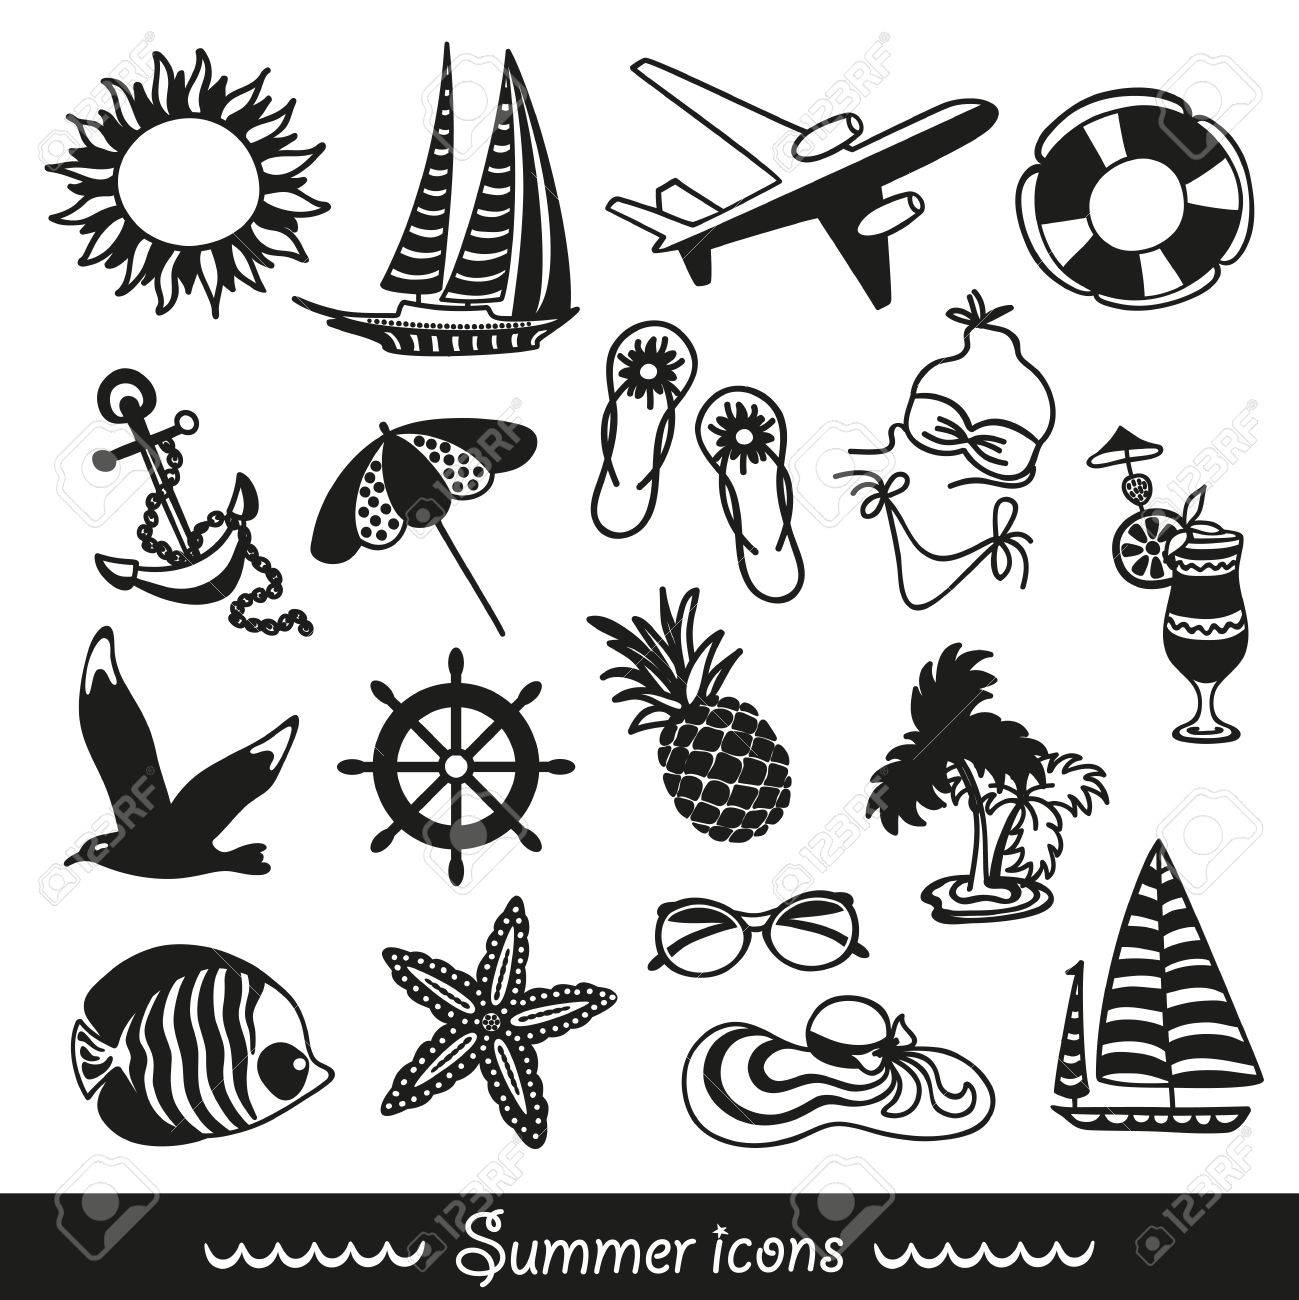 black and white summer icons symbolizing summer vacation travel royalty free cliparts vectors and stock illustration image 40819142 black and white summer icons symbolizing summer vacation travel